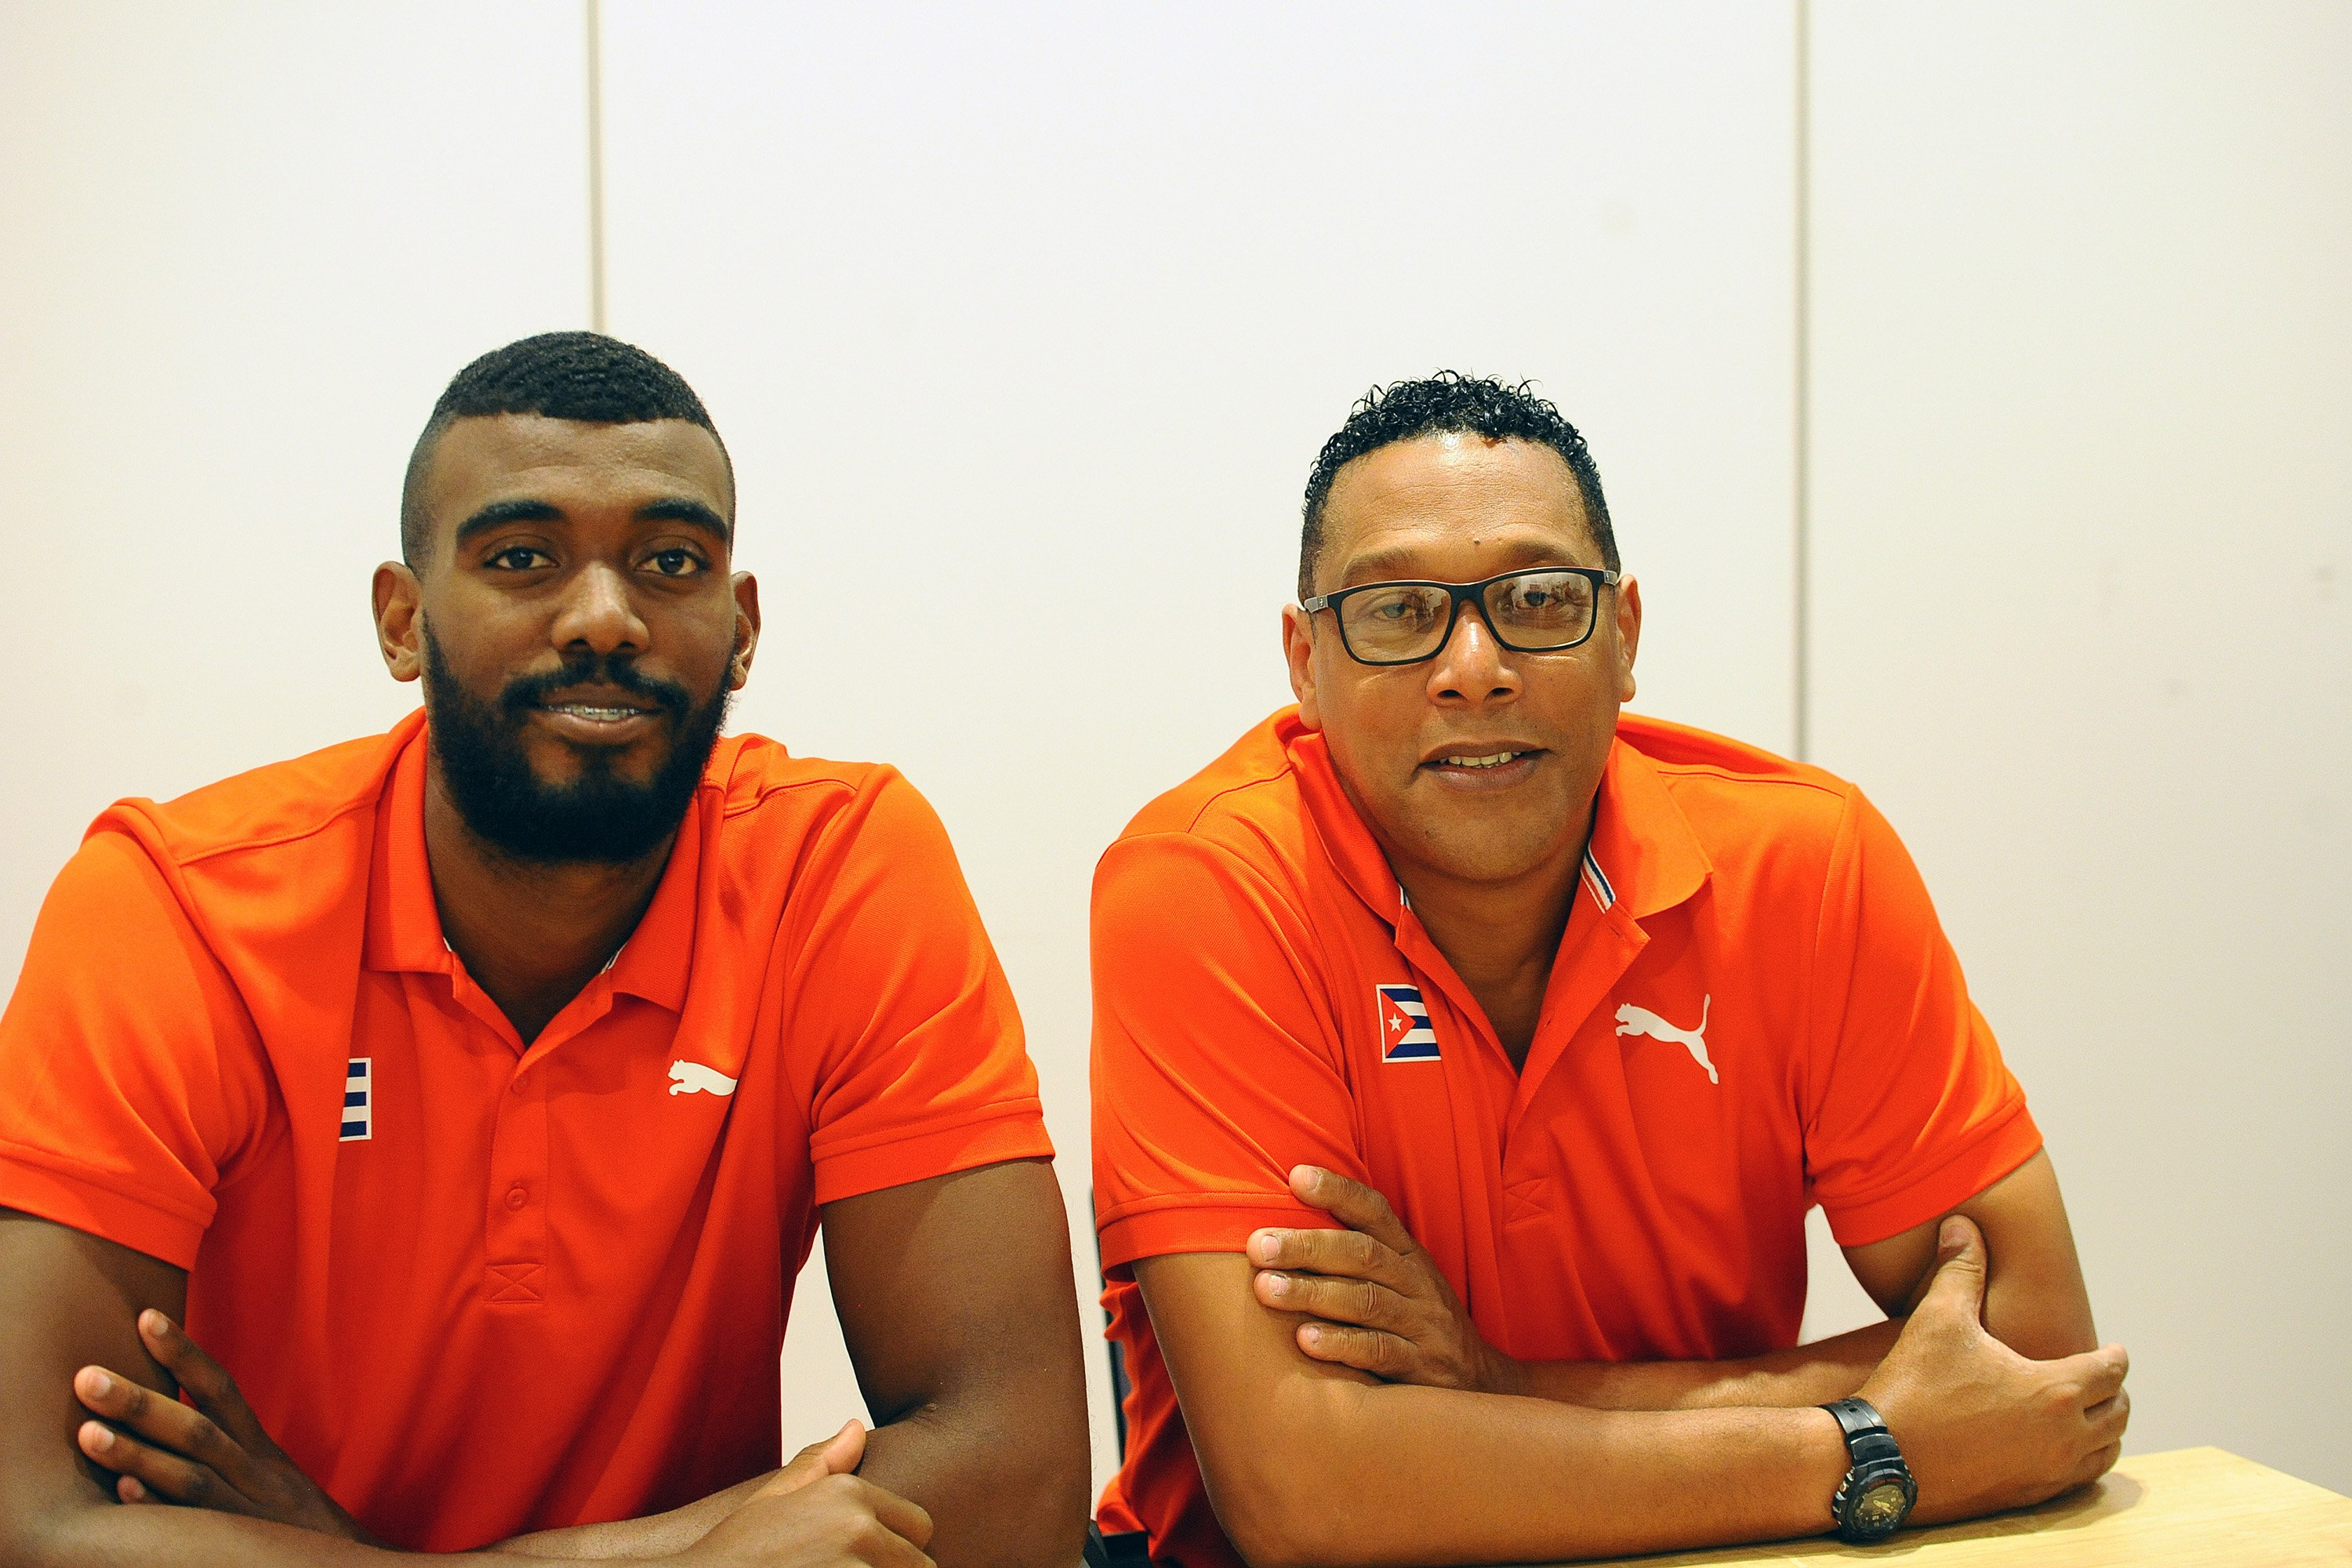 Livan Osoria Rodriguez (L) and Vives Coffigny Nicolas Ernesto of Cuba at Press conference at M Hotel, Ljubljana on 2 July 2019